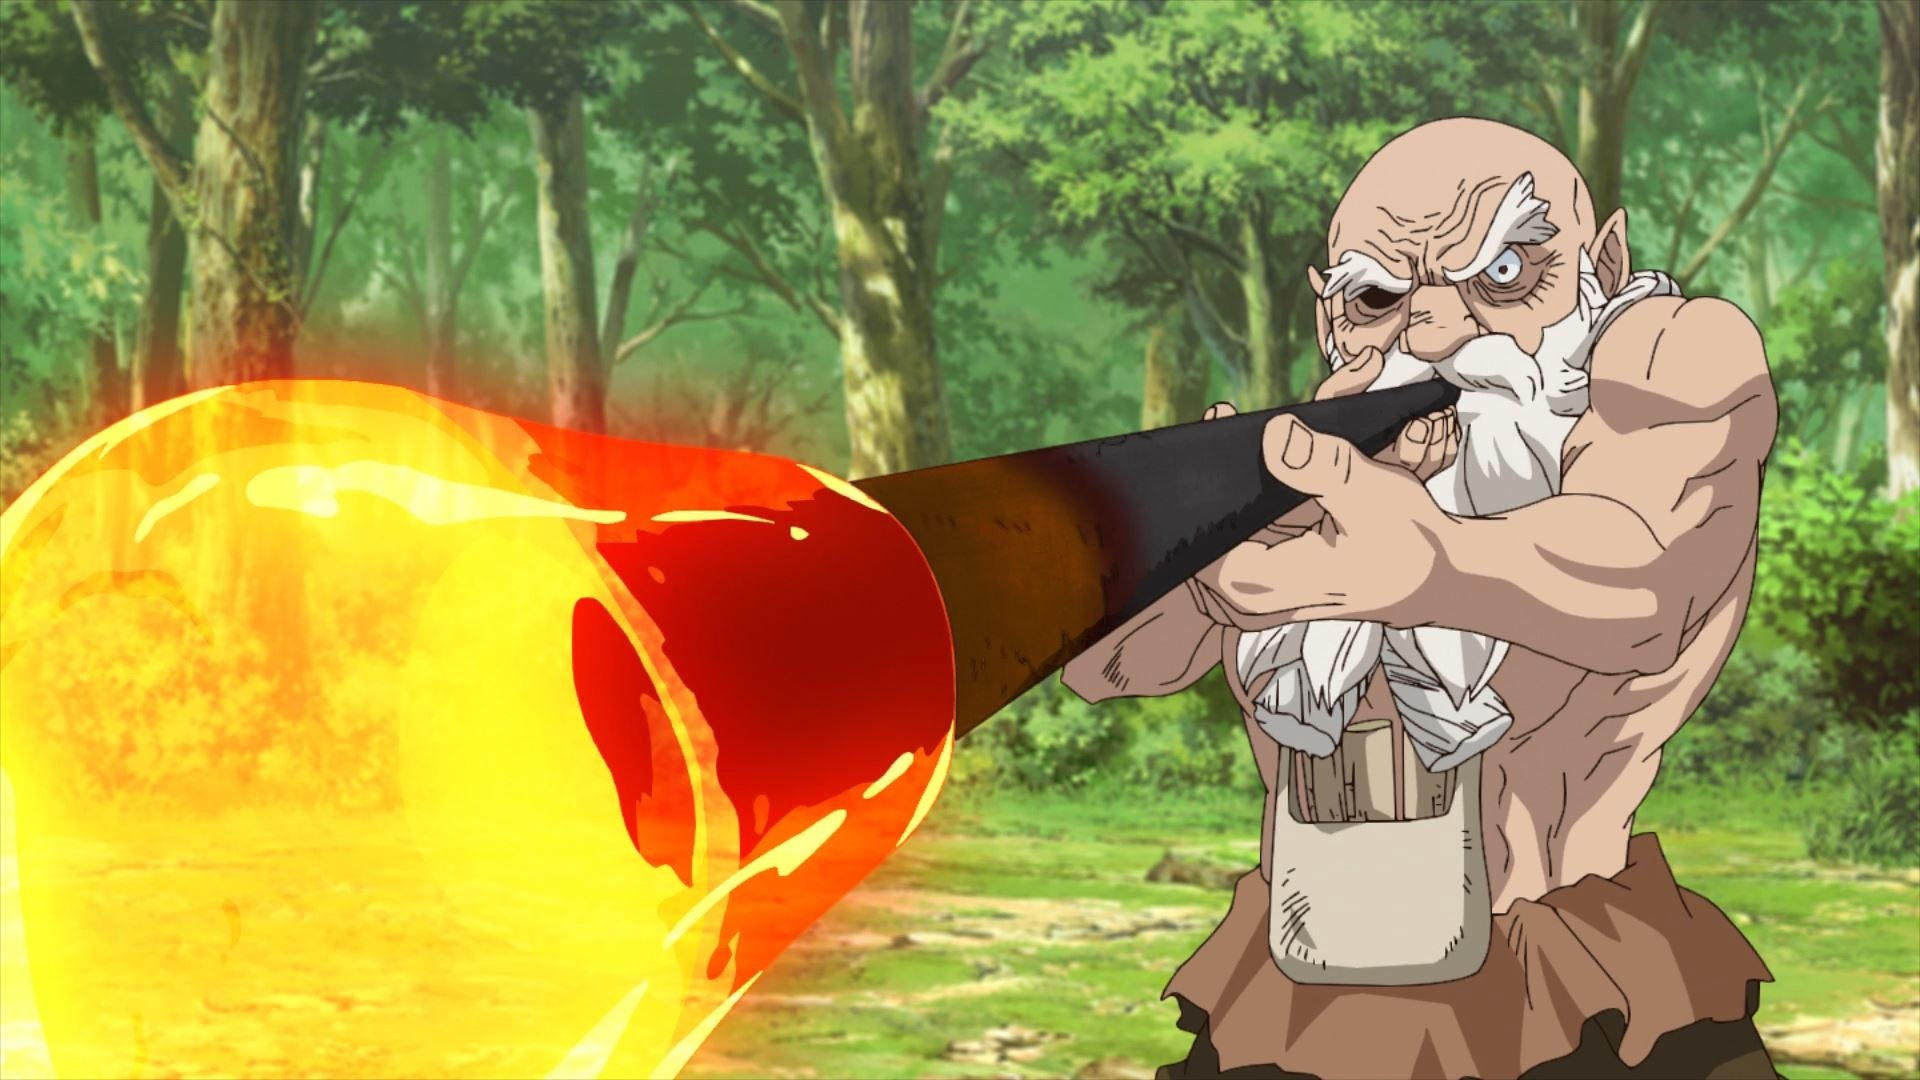 Dr.stone ep 11 screen 3